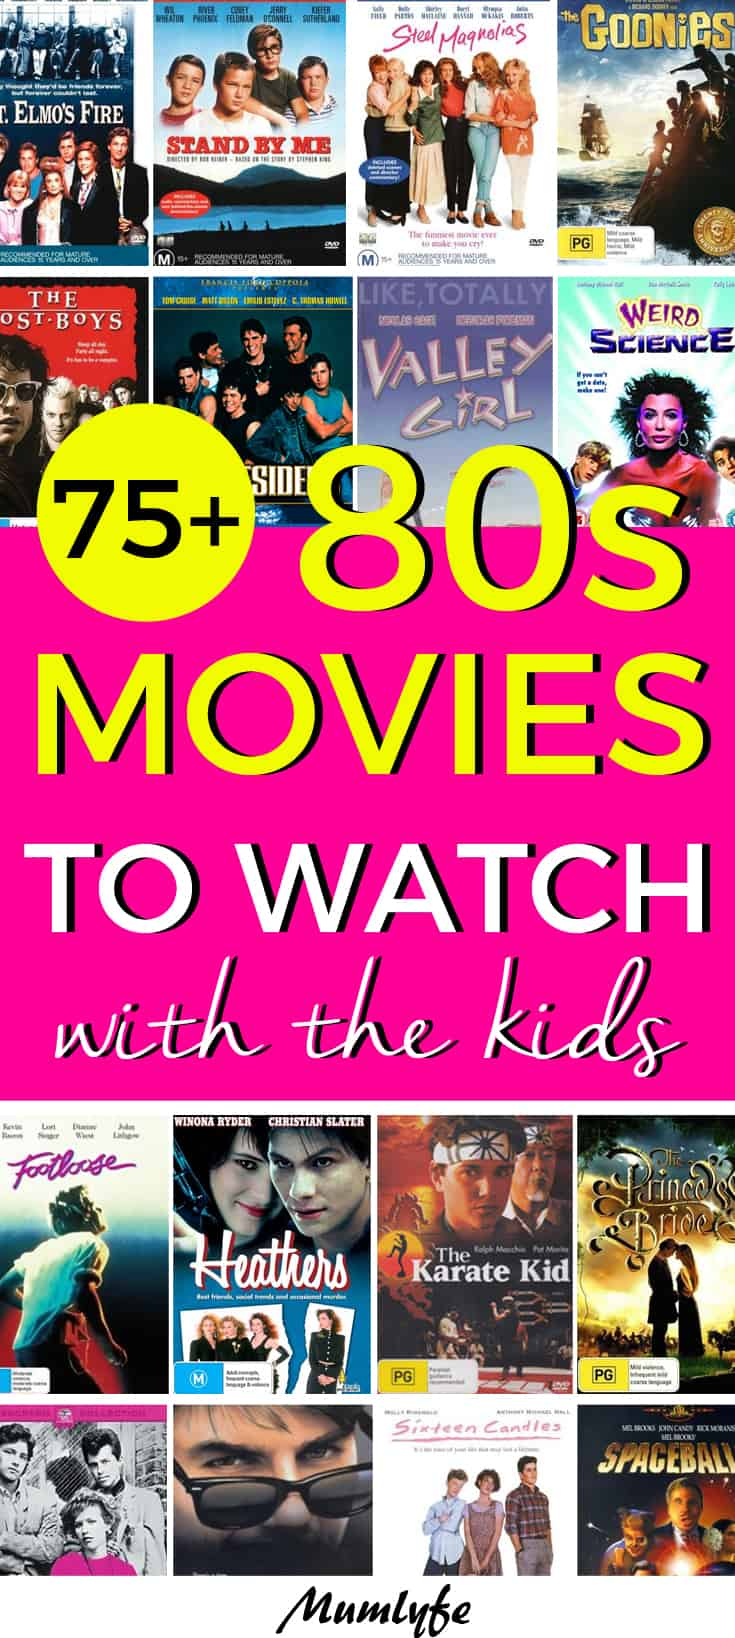 The best 80s movies to watch with the kids - awesome way to spend time together #80smovies #teens #movies